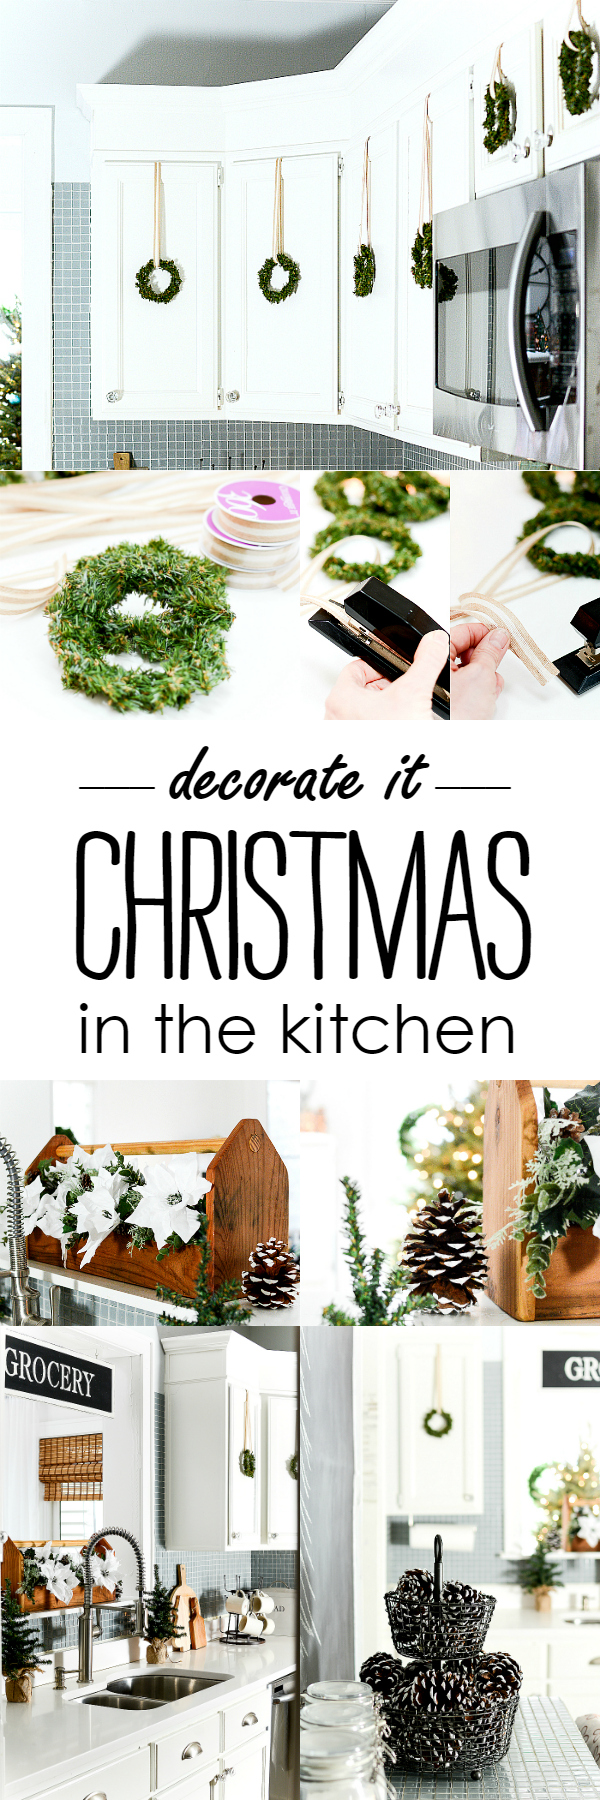 Christmas Kitchen Decorating Ideas with Mini Wreaths @It All Started With Paint www.itallstartedwithpaint.com